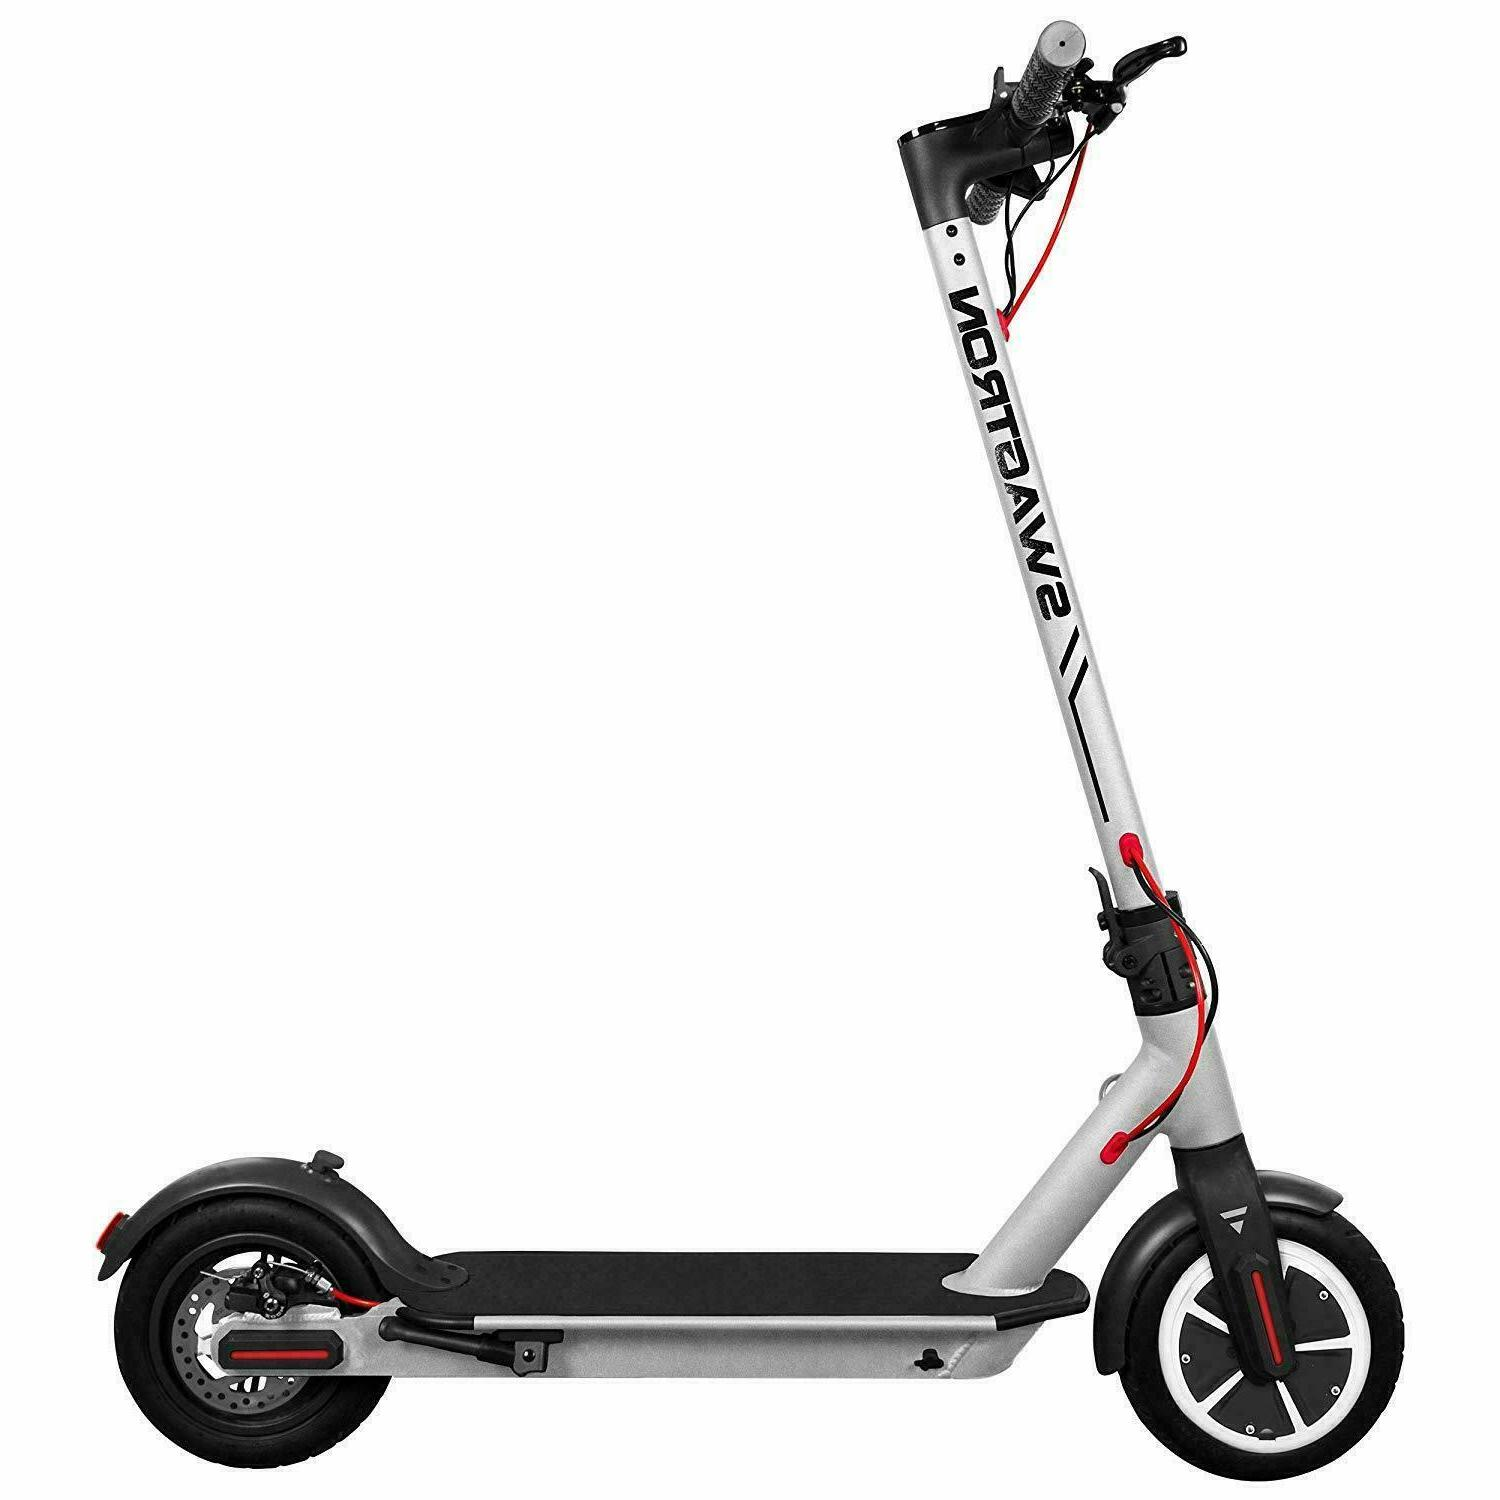 Silver Swagger 5 High Speed Electric Scooter Cruise Control